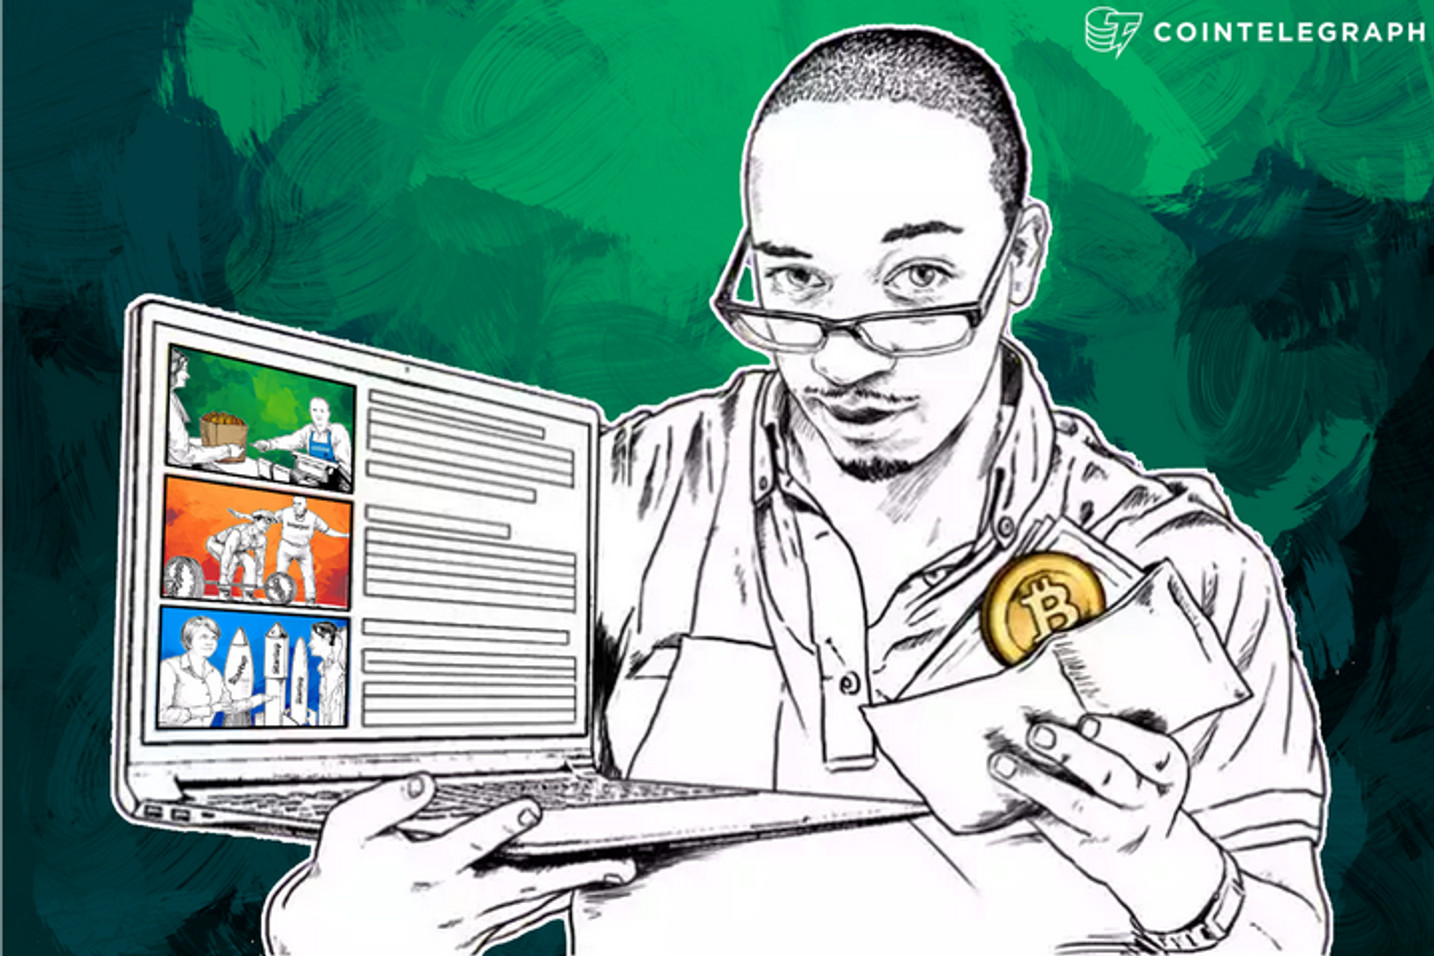 FinTech Digest: Bitcoin Transactions In Cuba, The Debut Of Coin 2.0, Coinbase Tests New Service In Europe